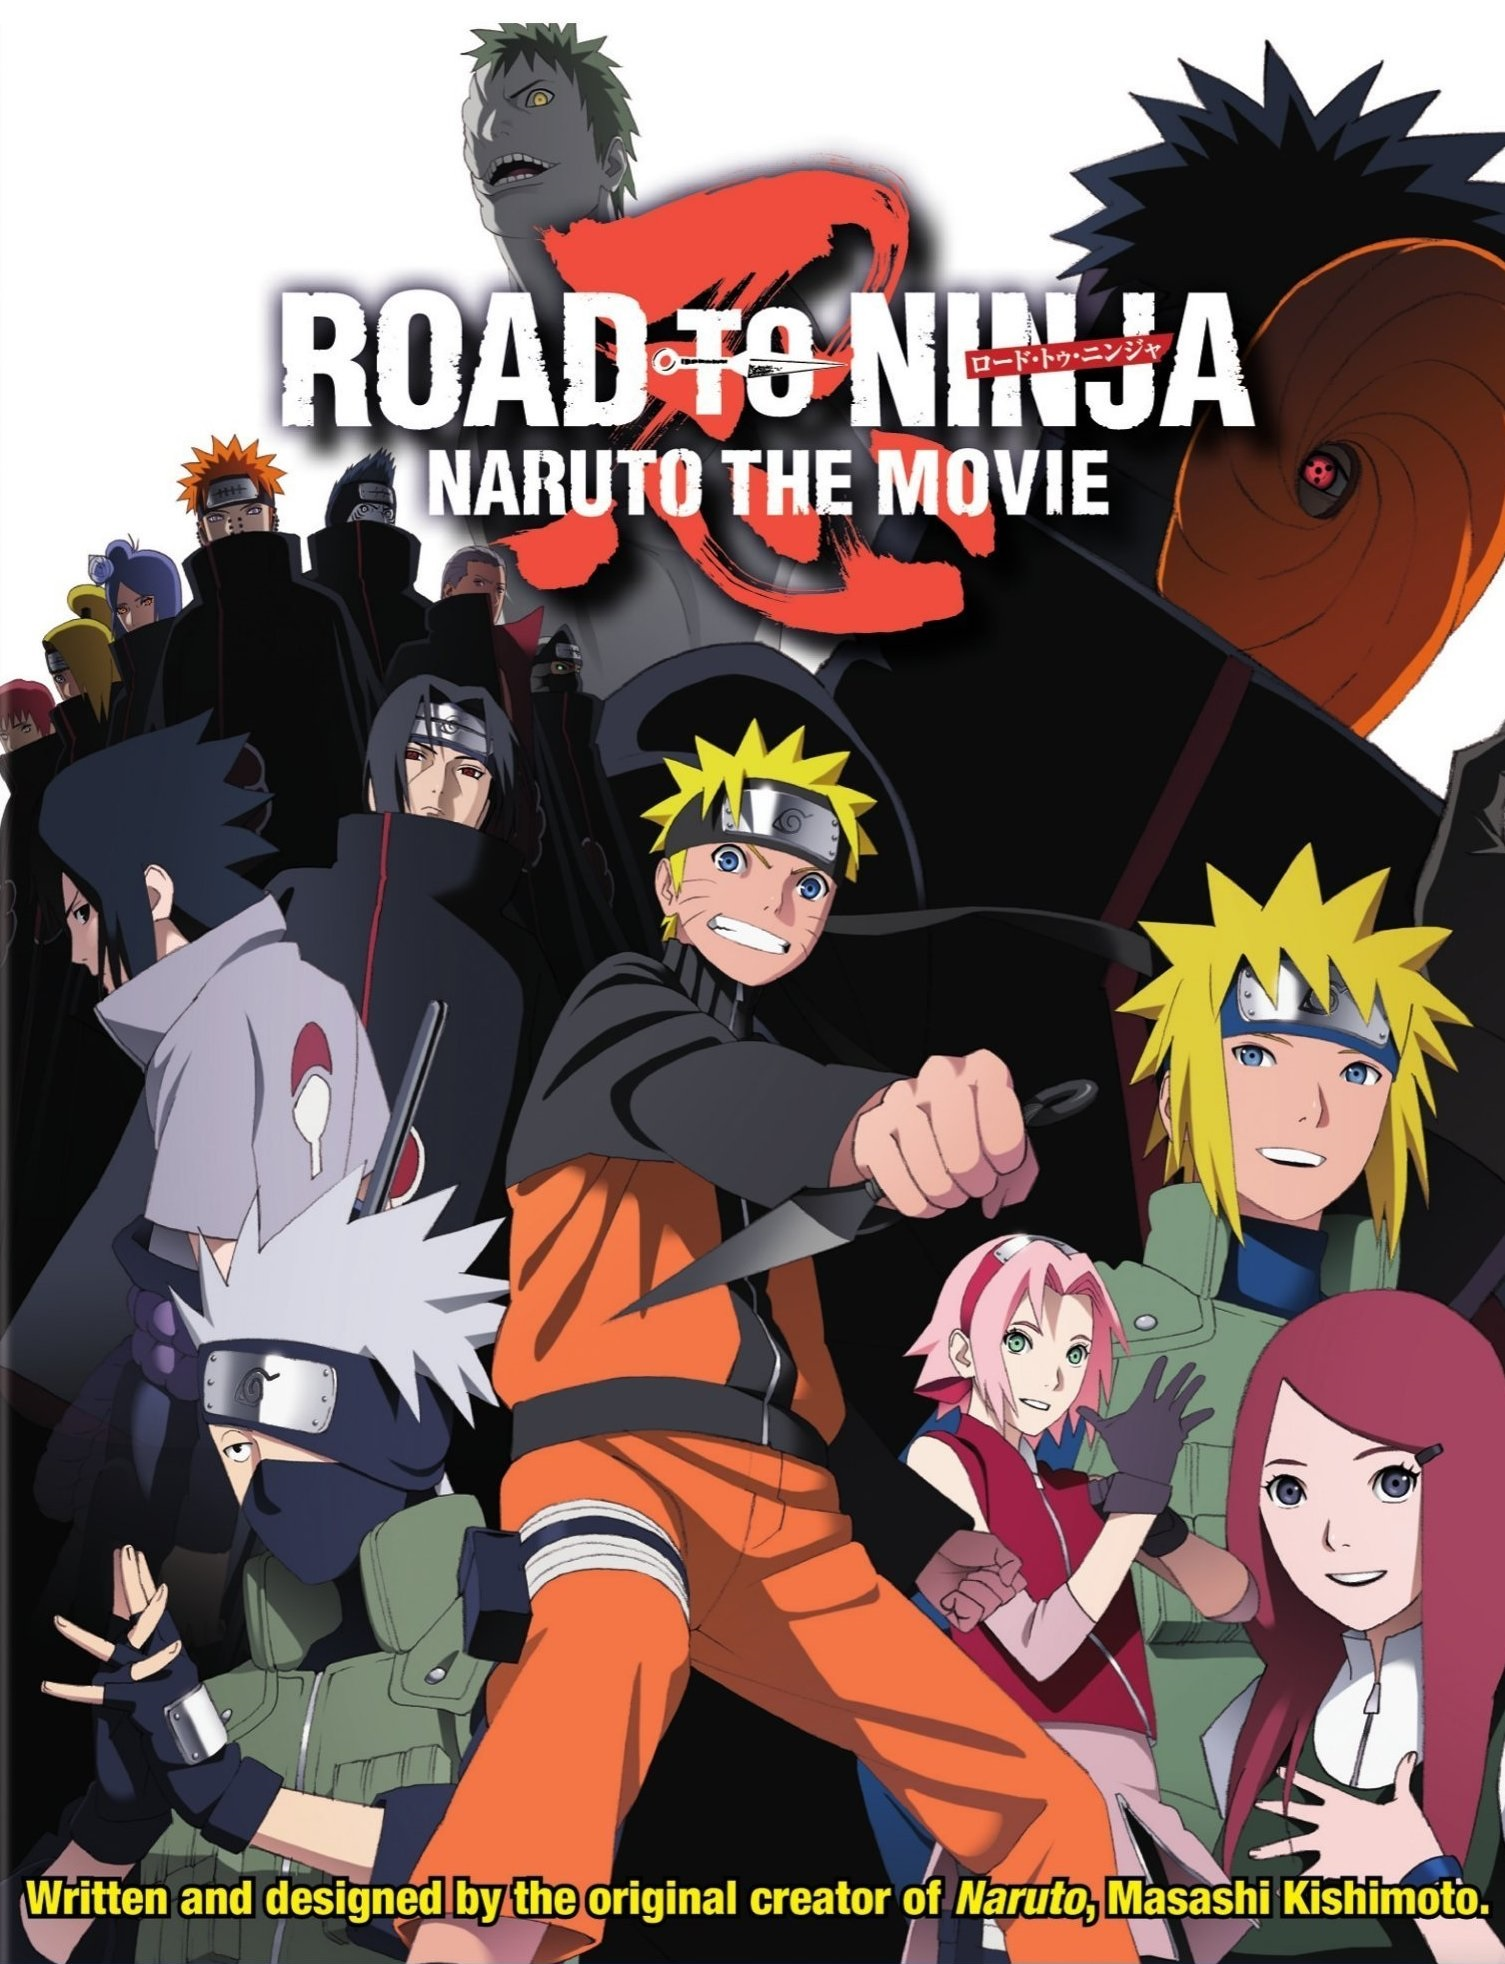 Road to ninja naruto the movie 2012 dvd cover